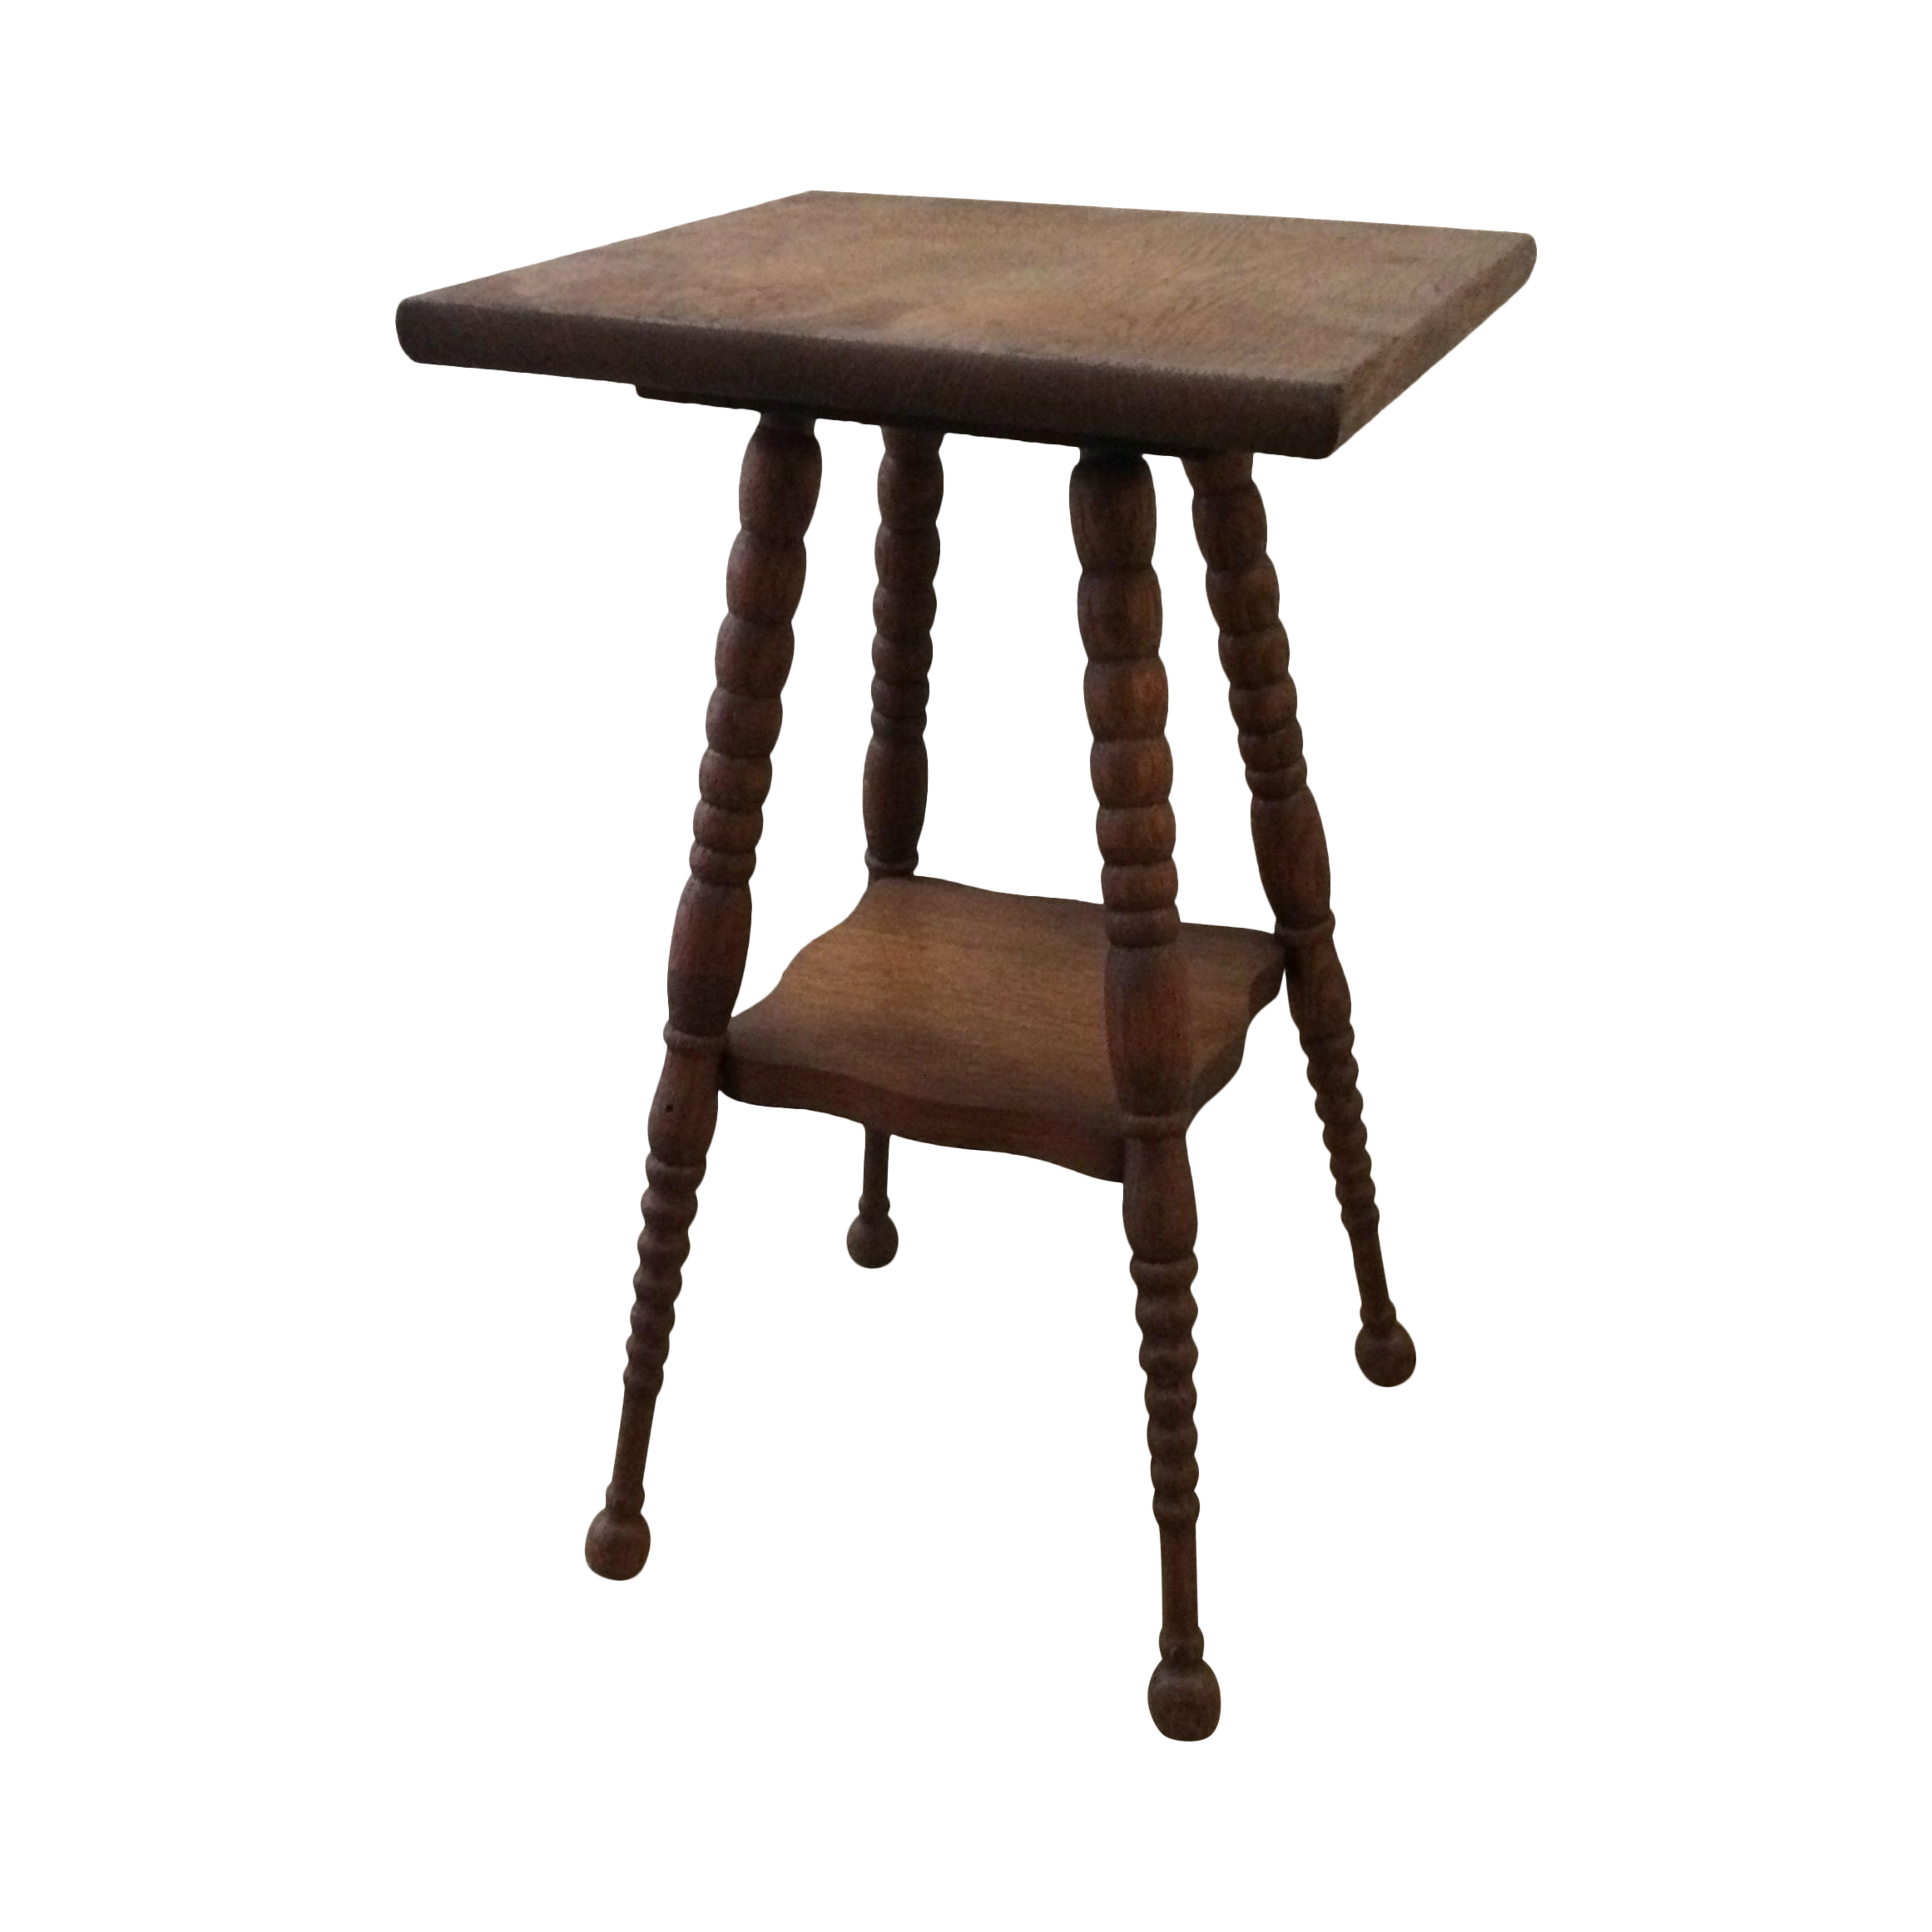 A Petite Vintage Side Table With Beautiful Spindle Leg Details And A  Functional Bottom Shelf.